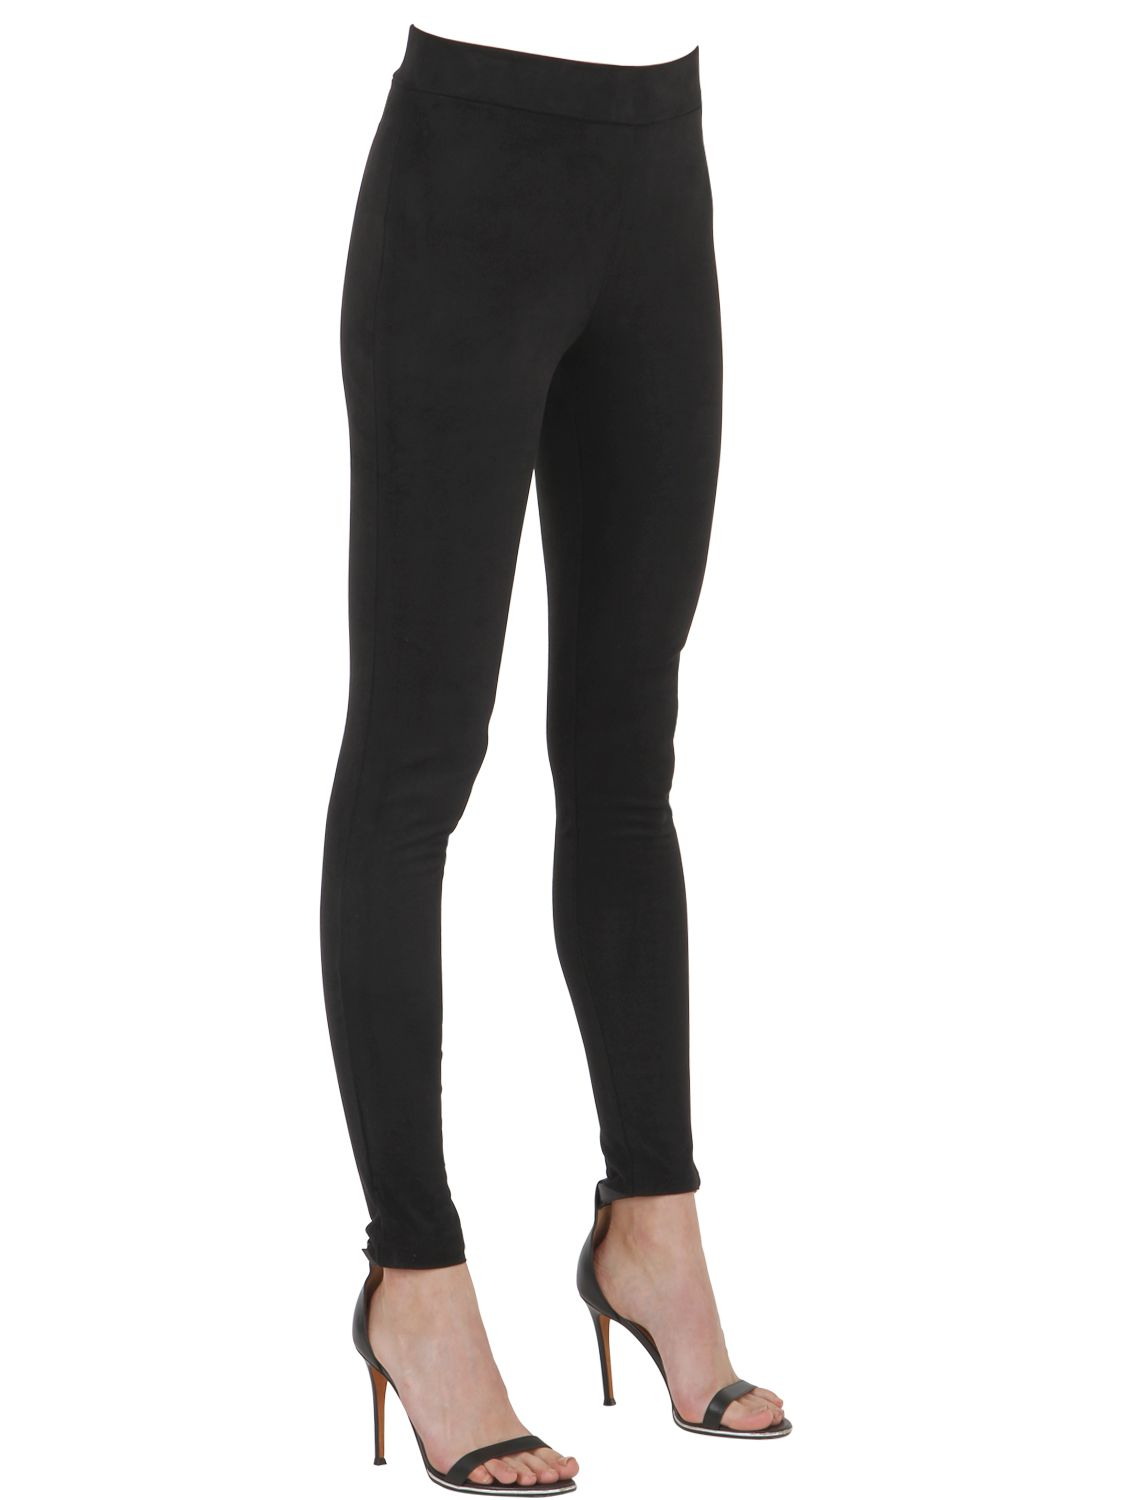 Shop for velour leggings online at Target. Free shipping on purchases over $35 and save 5% every day with your Target REDcard.